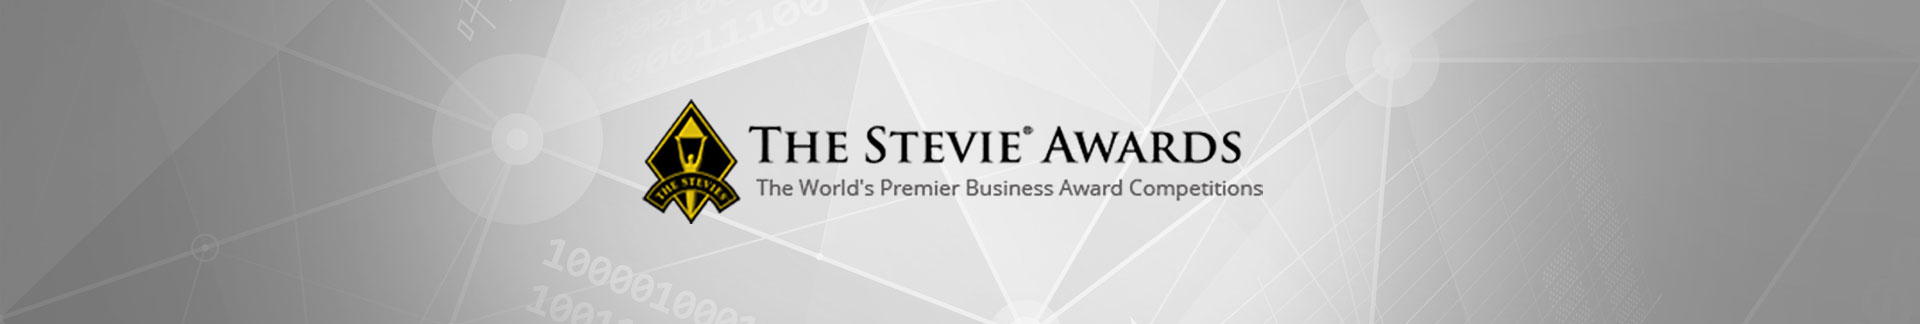 The Stevie Awards news banner